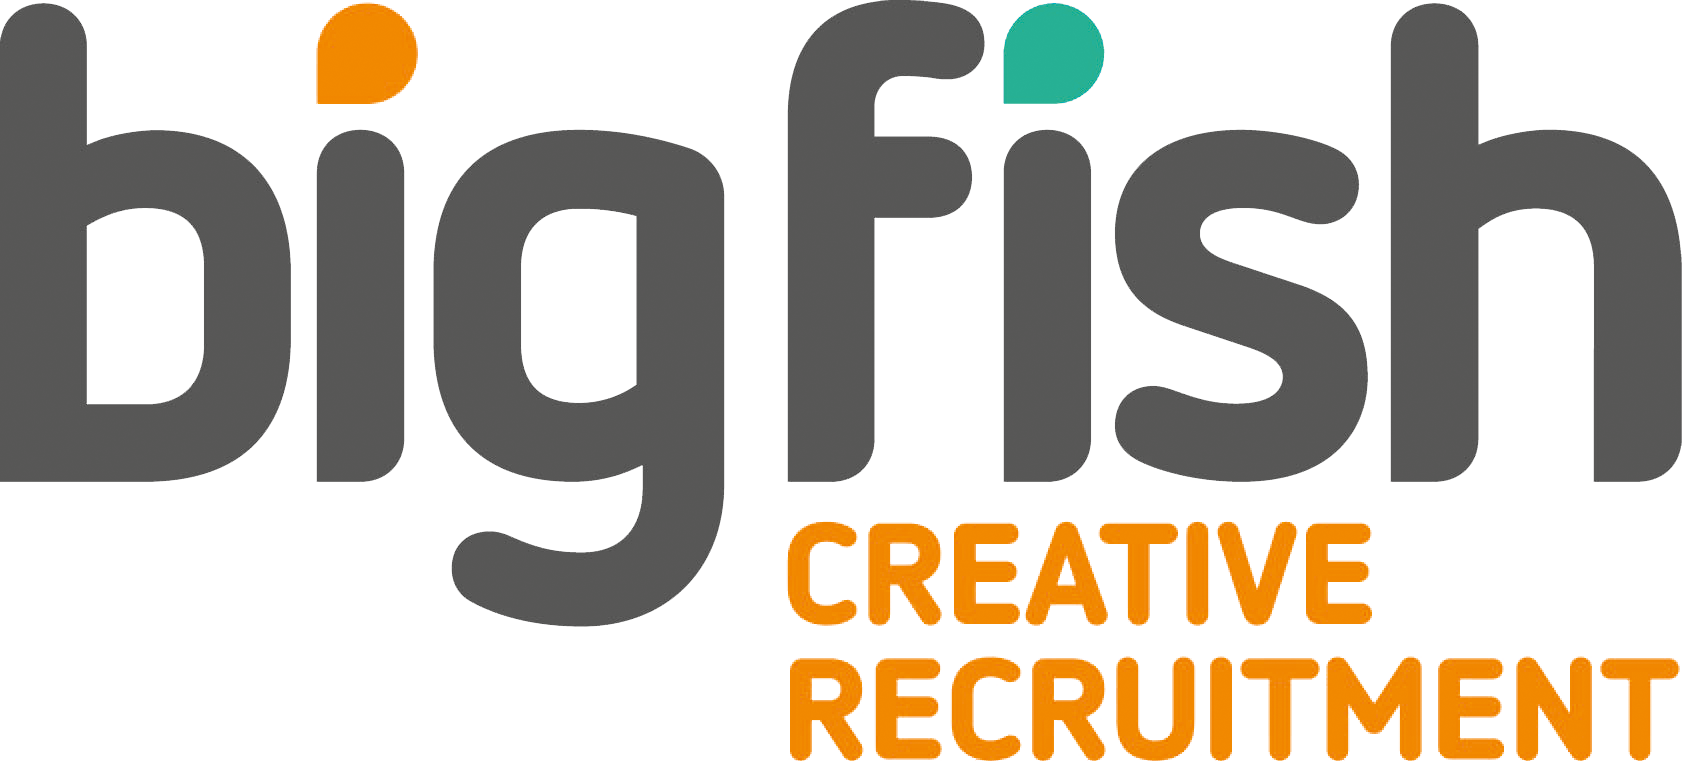 Big Fish Creative Recruitment